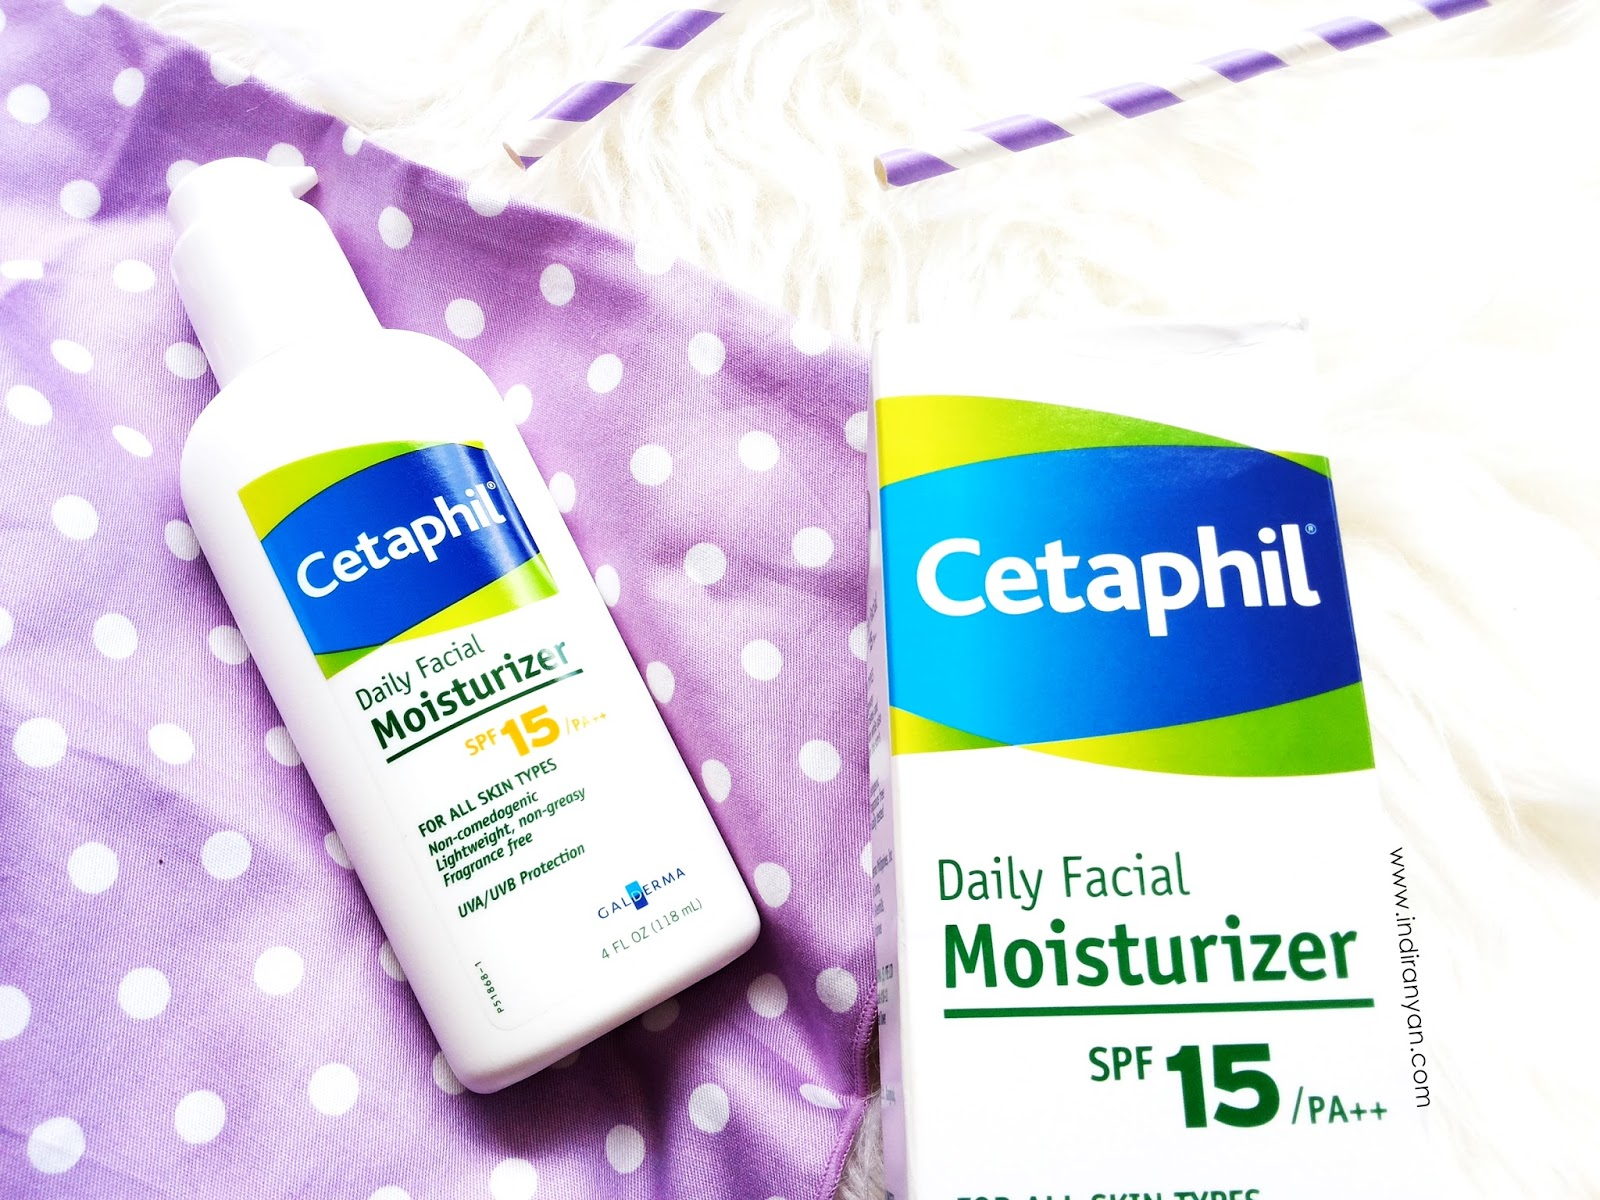 cetaphil-indonesia-daily-facial-moisturizer-review